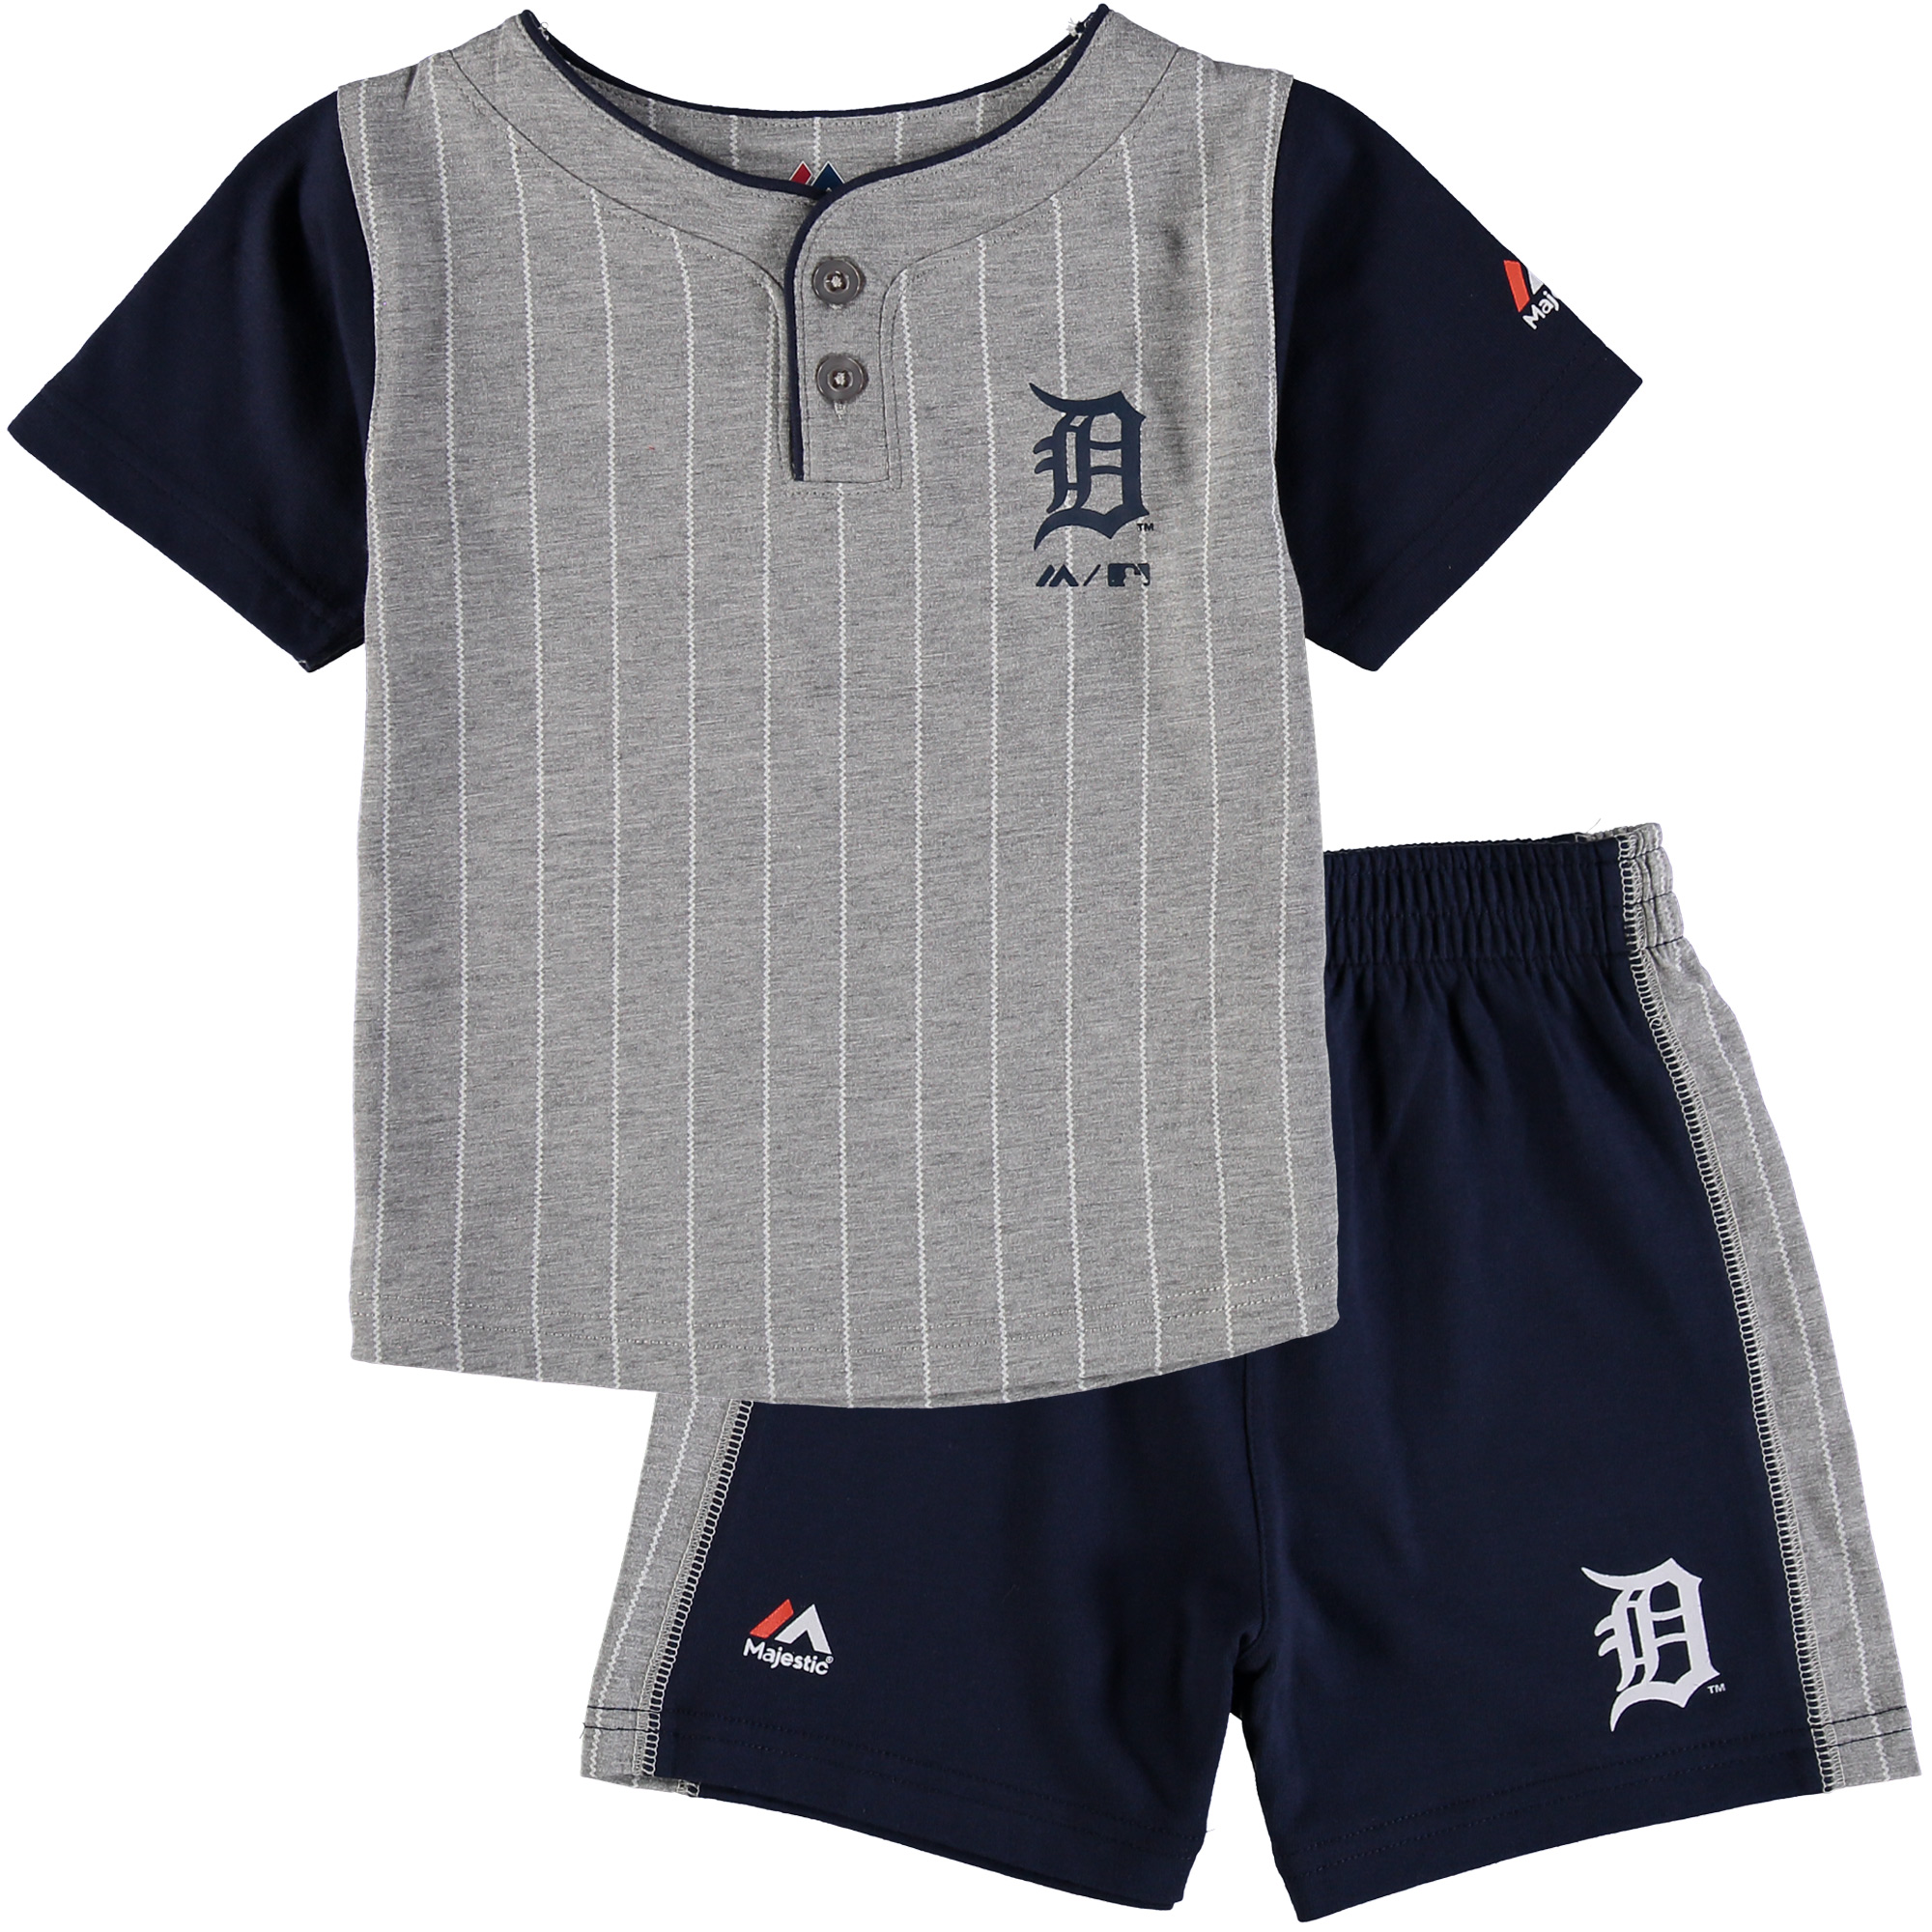 Detroit Tigers Majestic Toddler Batter Up T-Shirt & Shorts Set - Gray/Navy